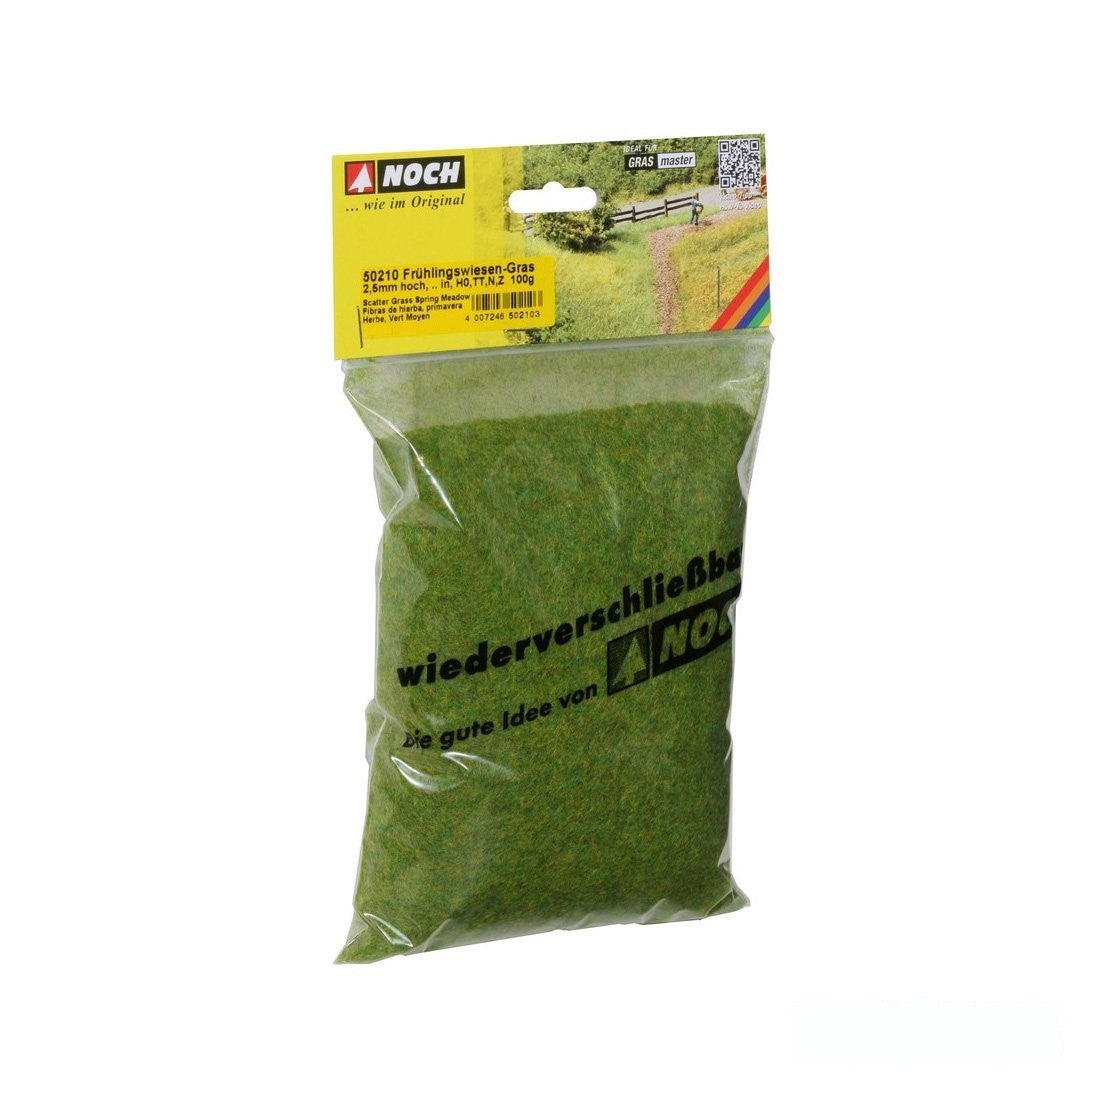 Static Grass: Noch - 2.5mm - XL Bag